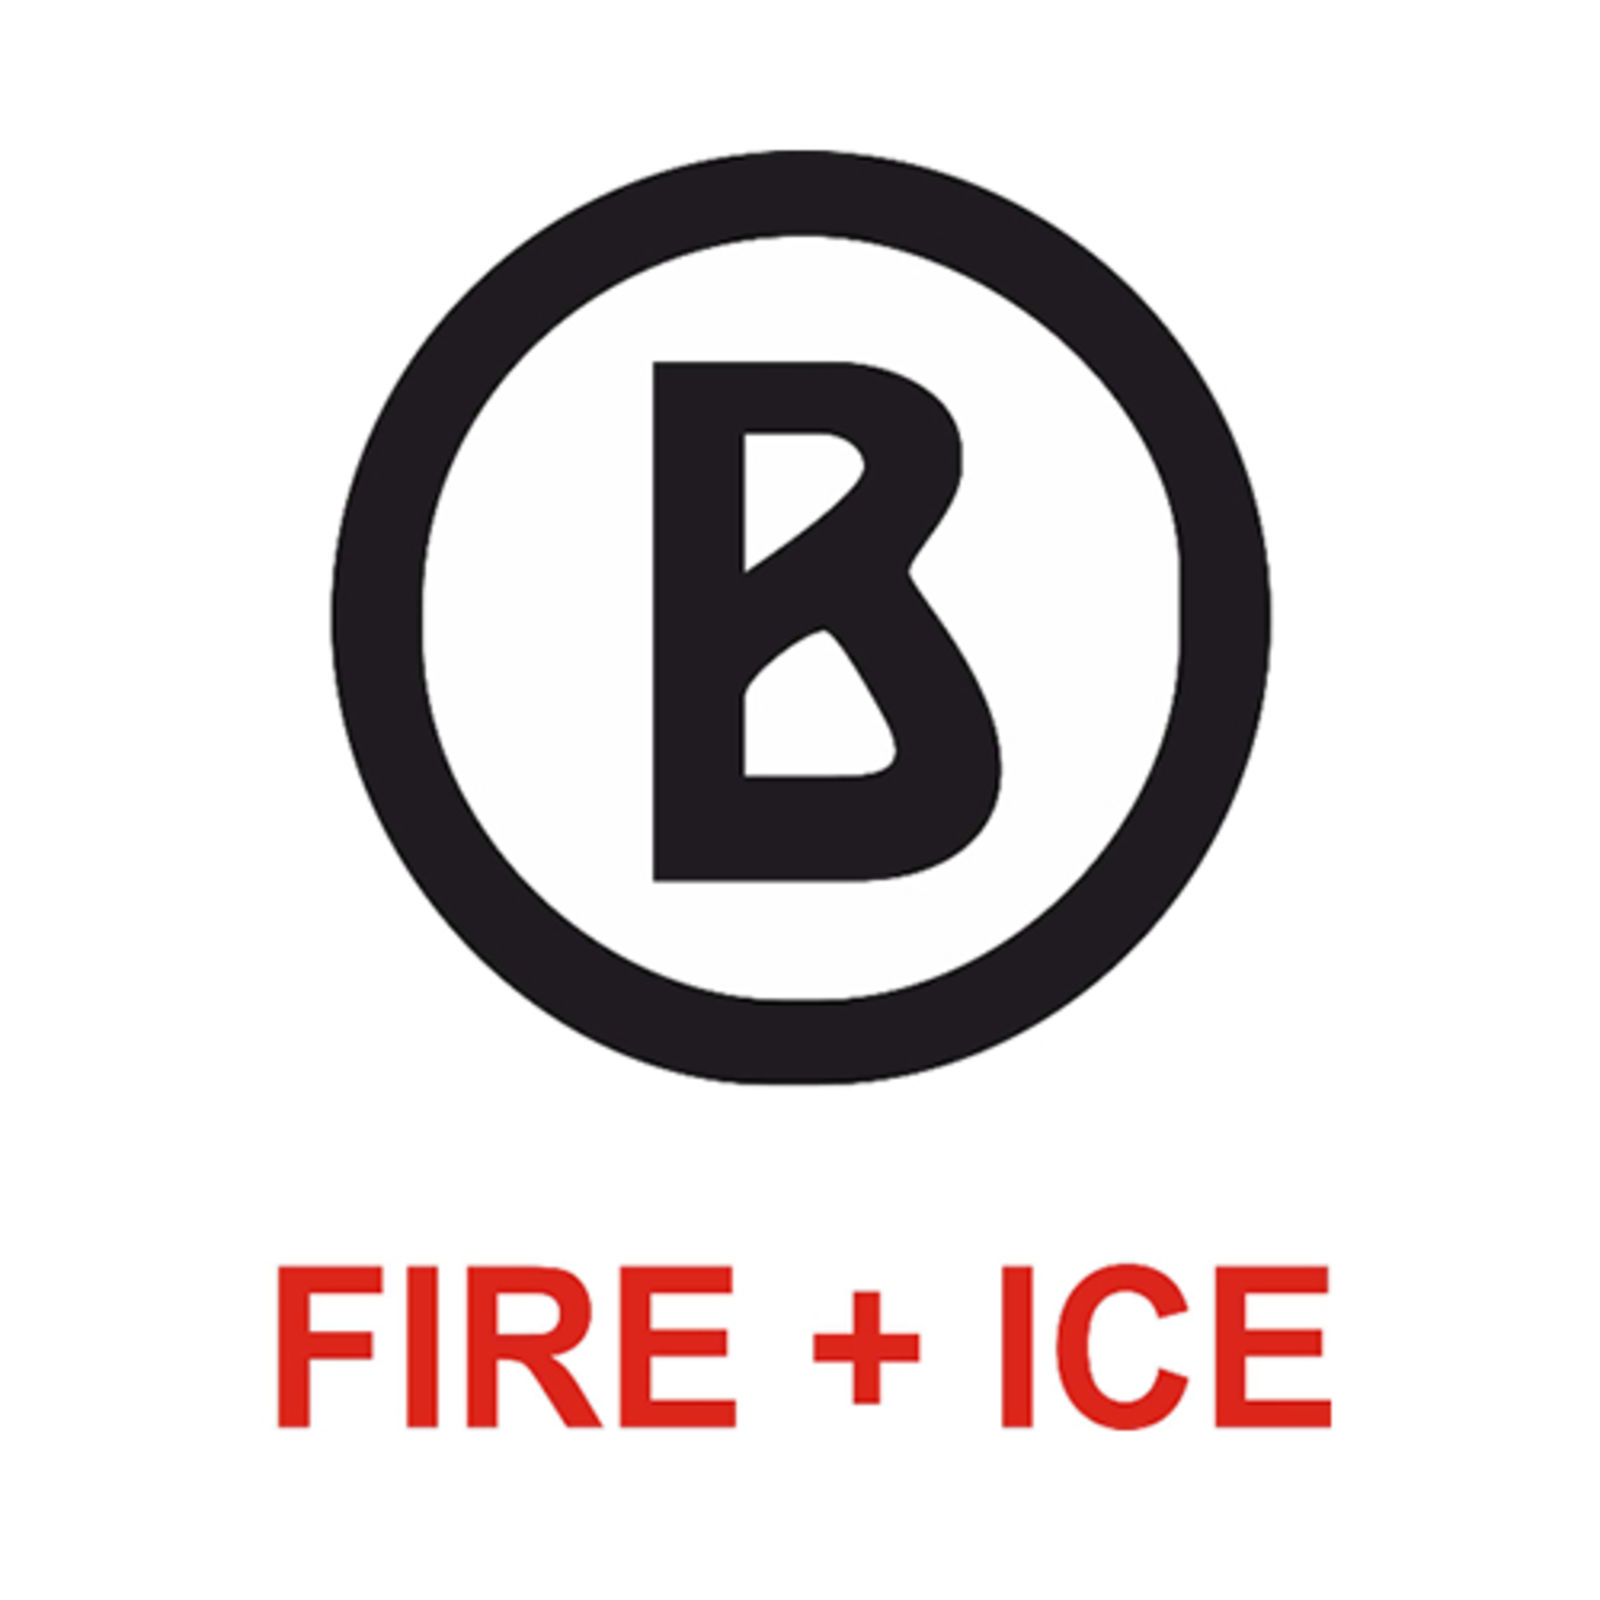 BOGNER Fire + Ice (Image 1)